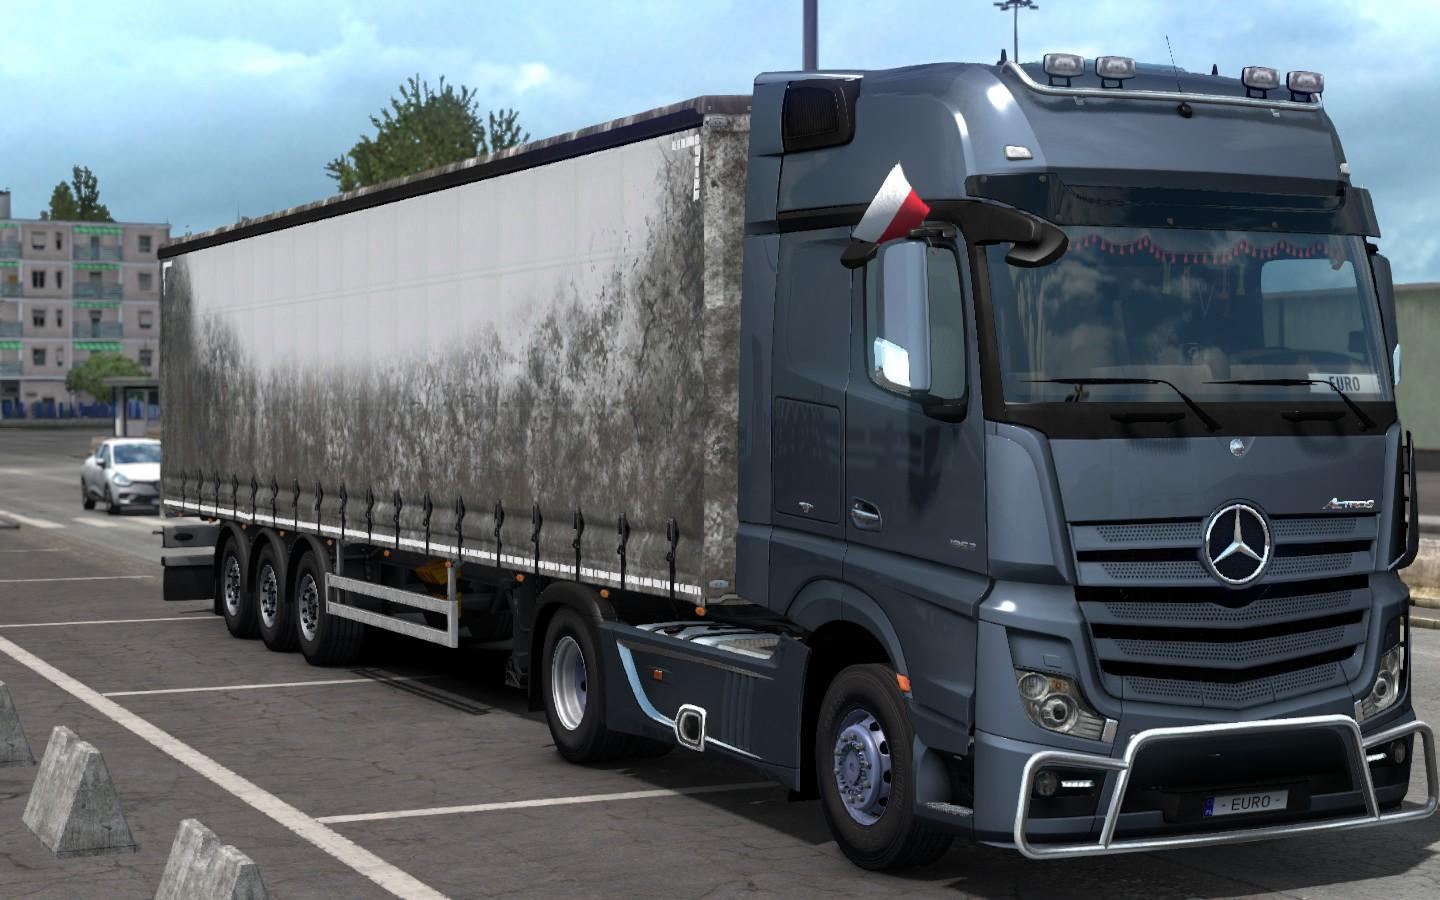 Dirt Grungy Ownable Standard Scs Trailers 1 32 X 1 33 X